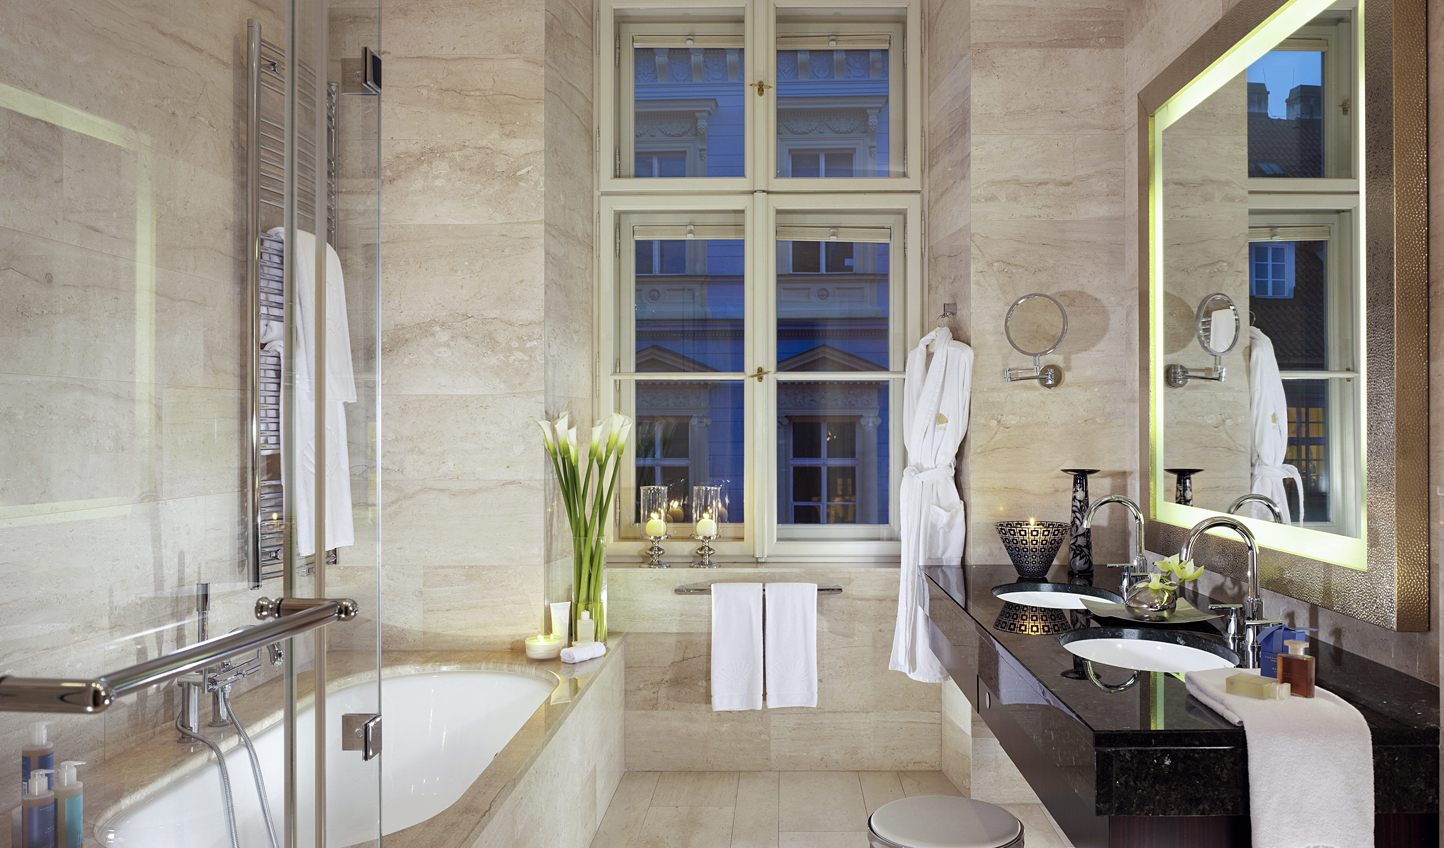 Step into luxurious bathrooms with underfloor heating